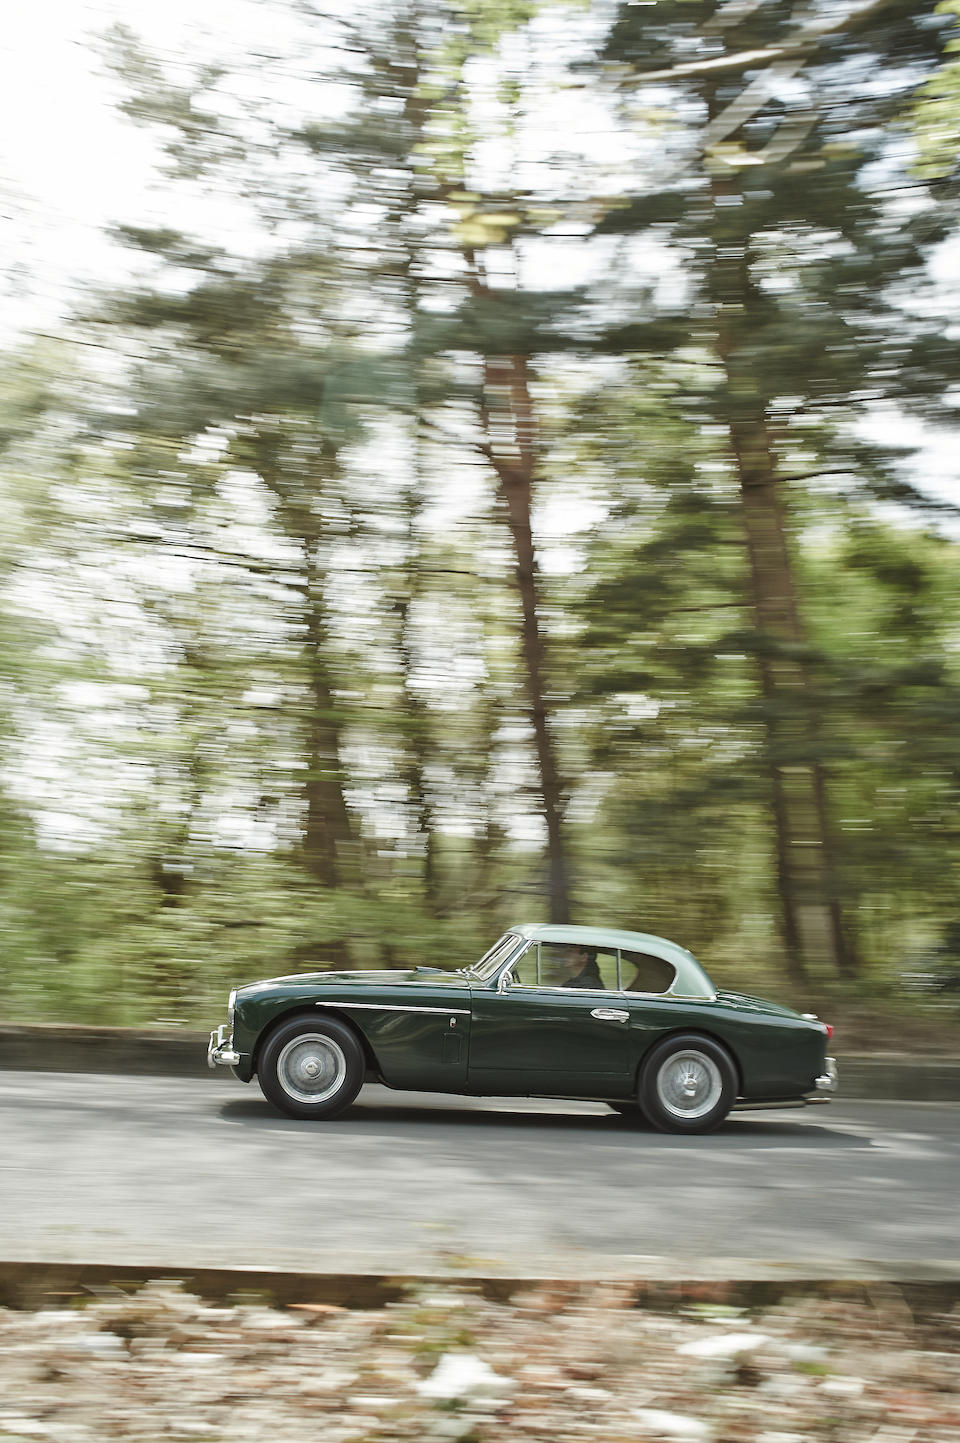 1956 Aston Martin  DB2/4 Mark II 3.7-Litre Coupé  Chassis no. AM300/1185